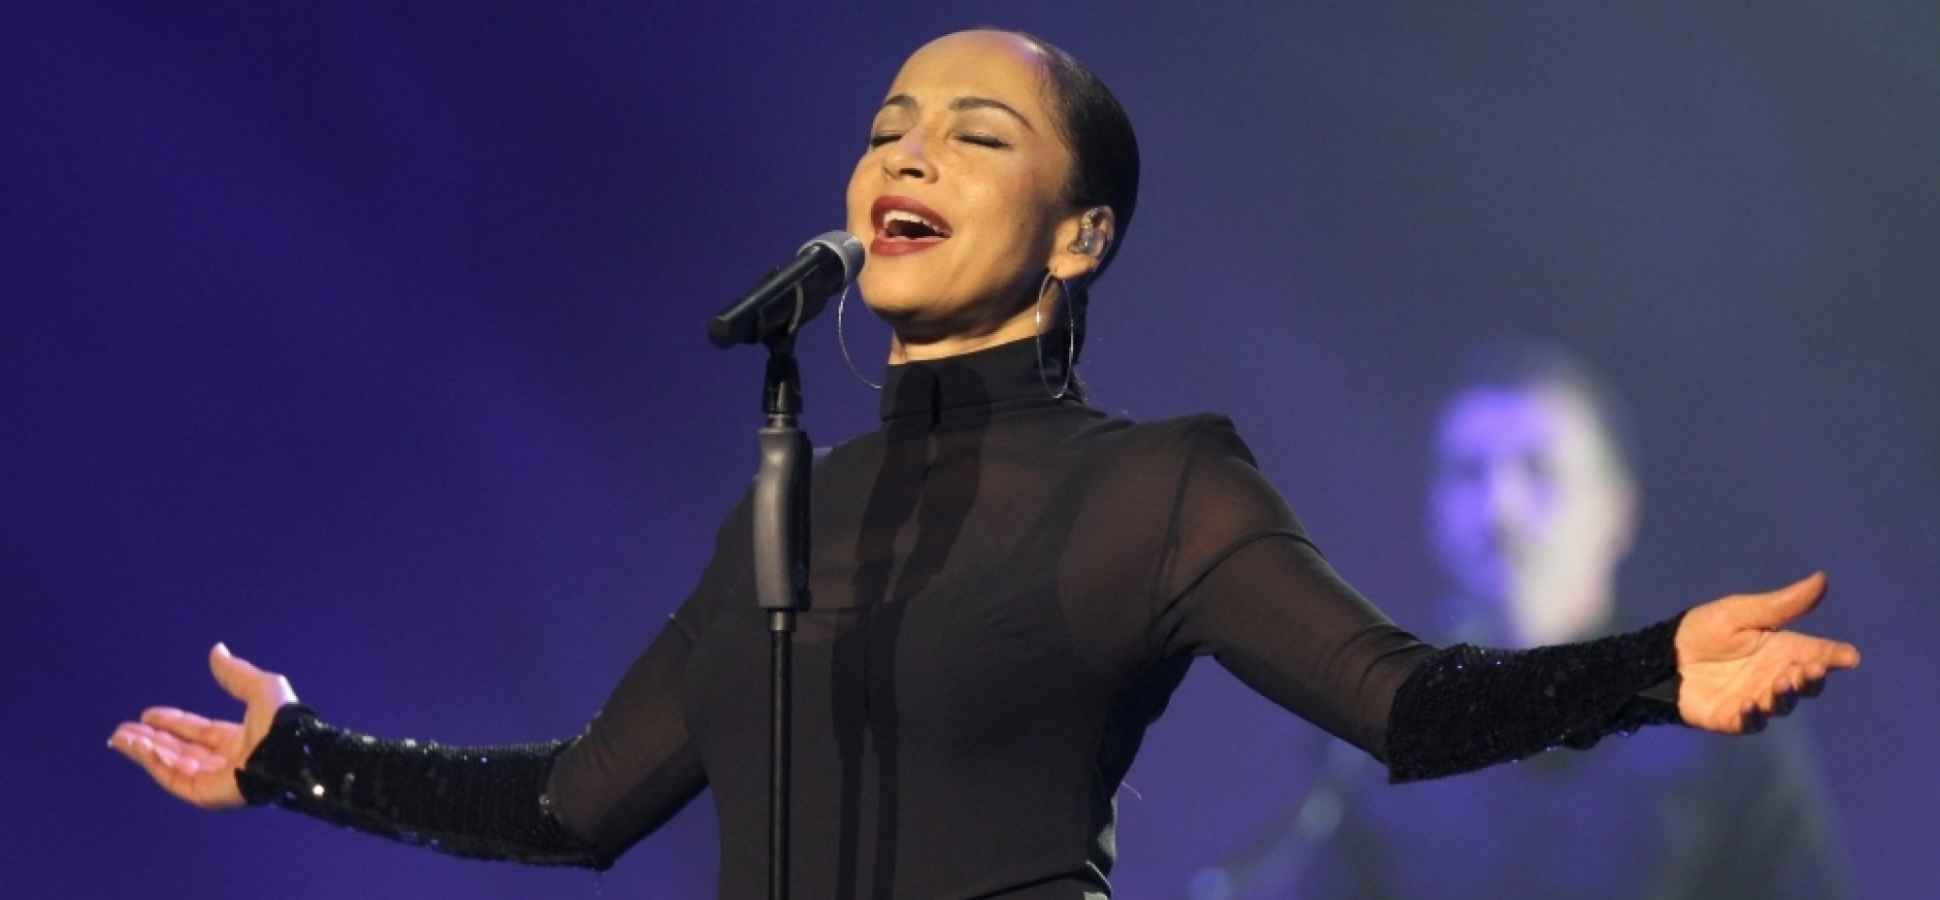 5 Essential Lessons From Sade on Branding